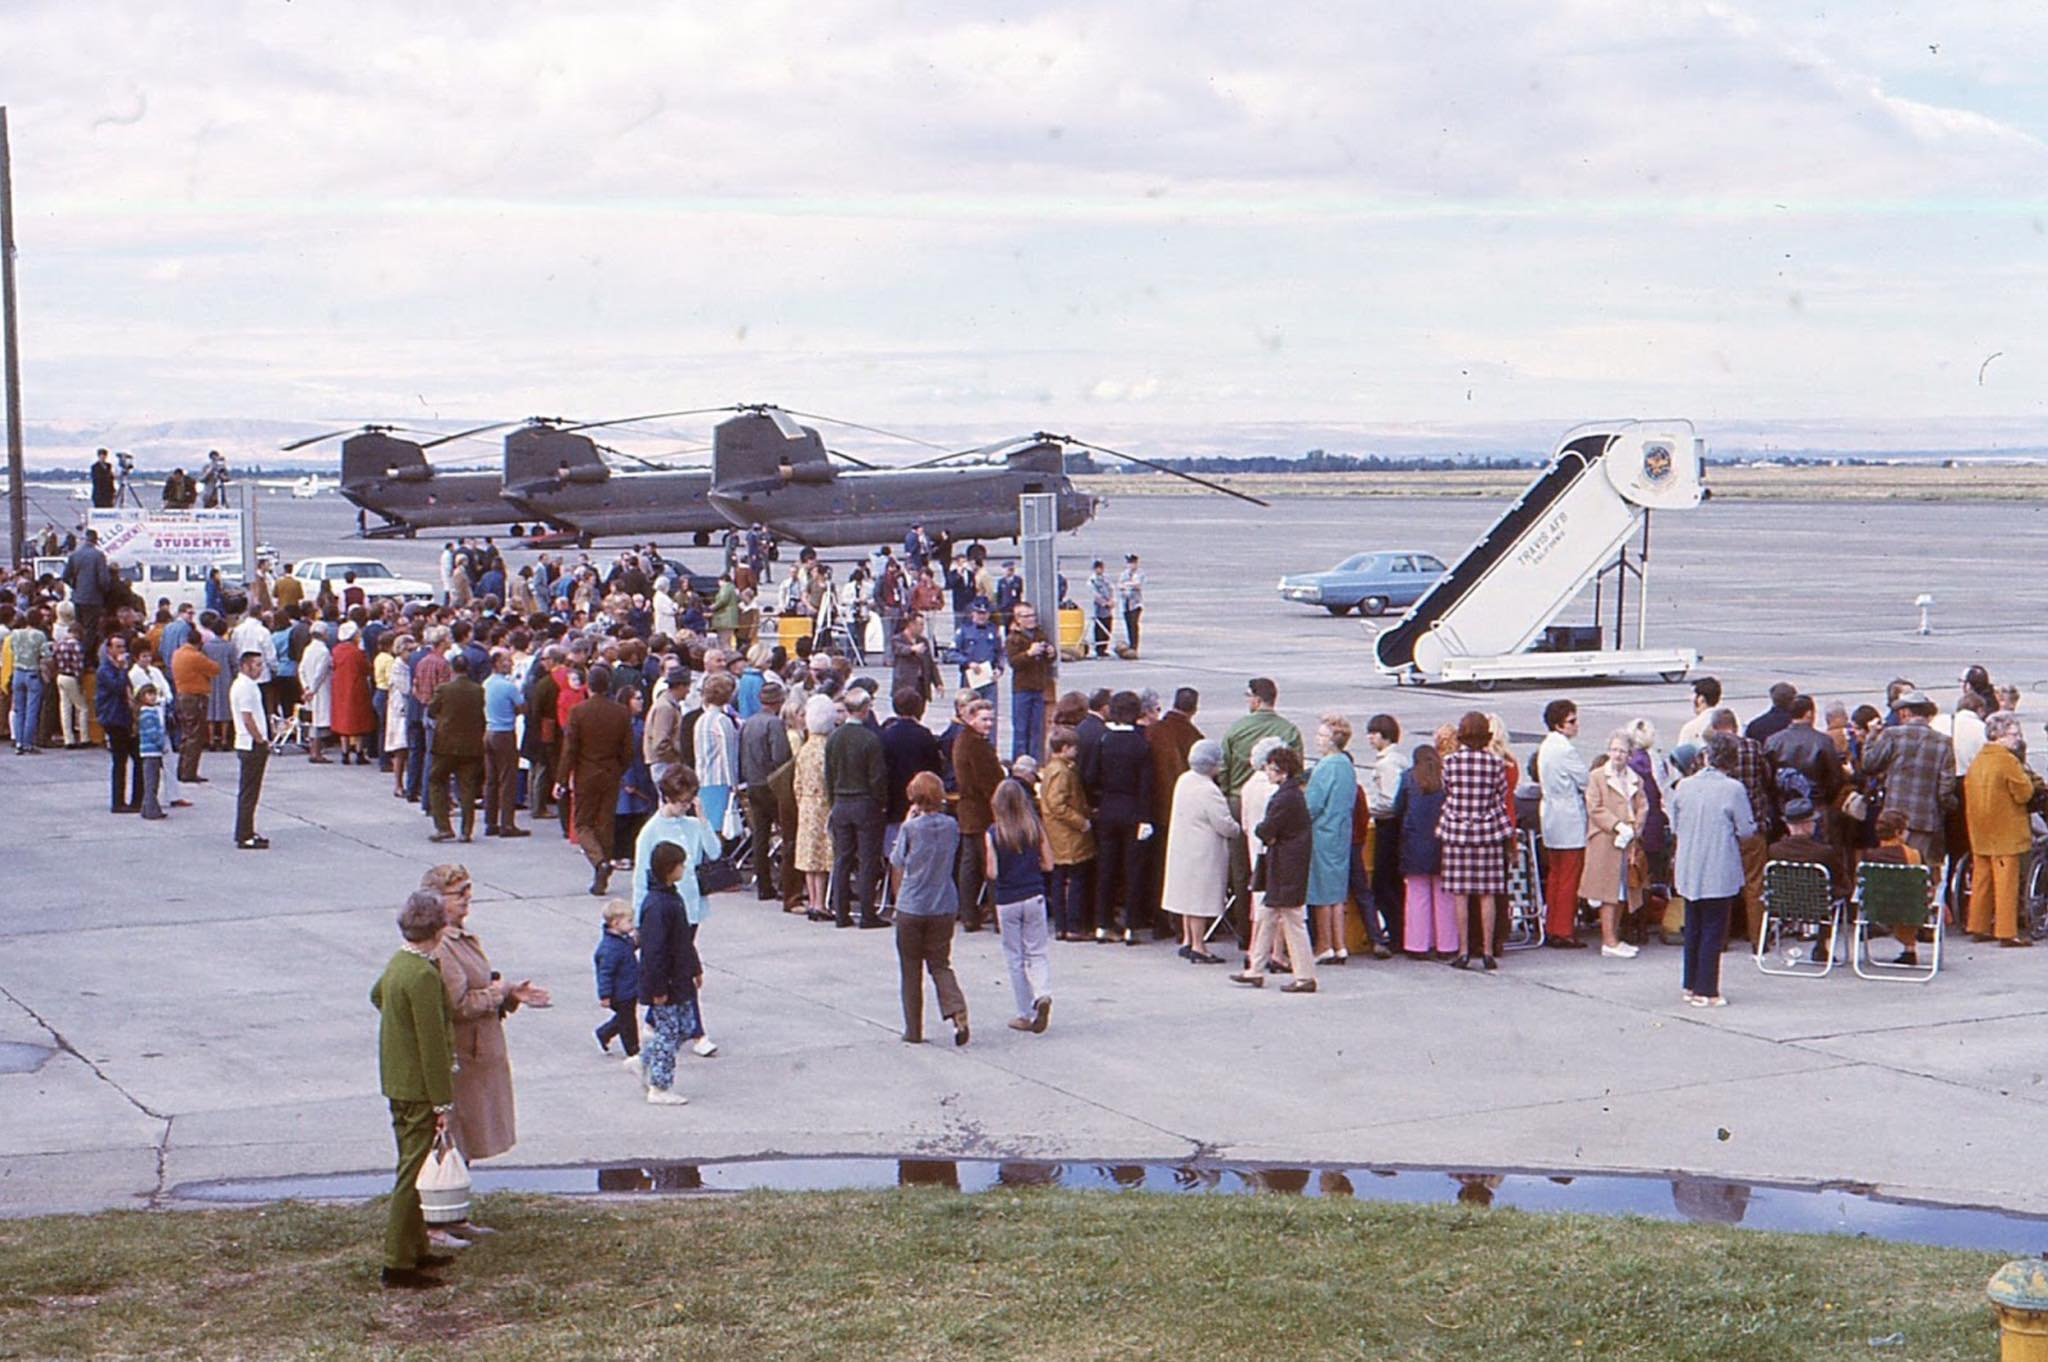 A crowd in Walla Walla, Washington awaits the arrival of Air Force One, September 1971